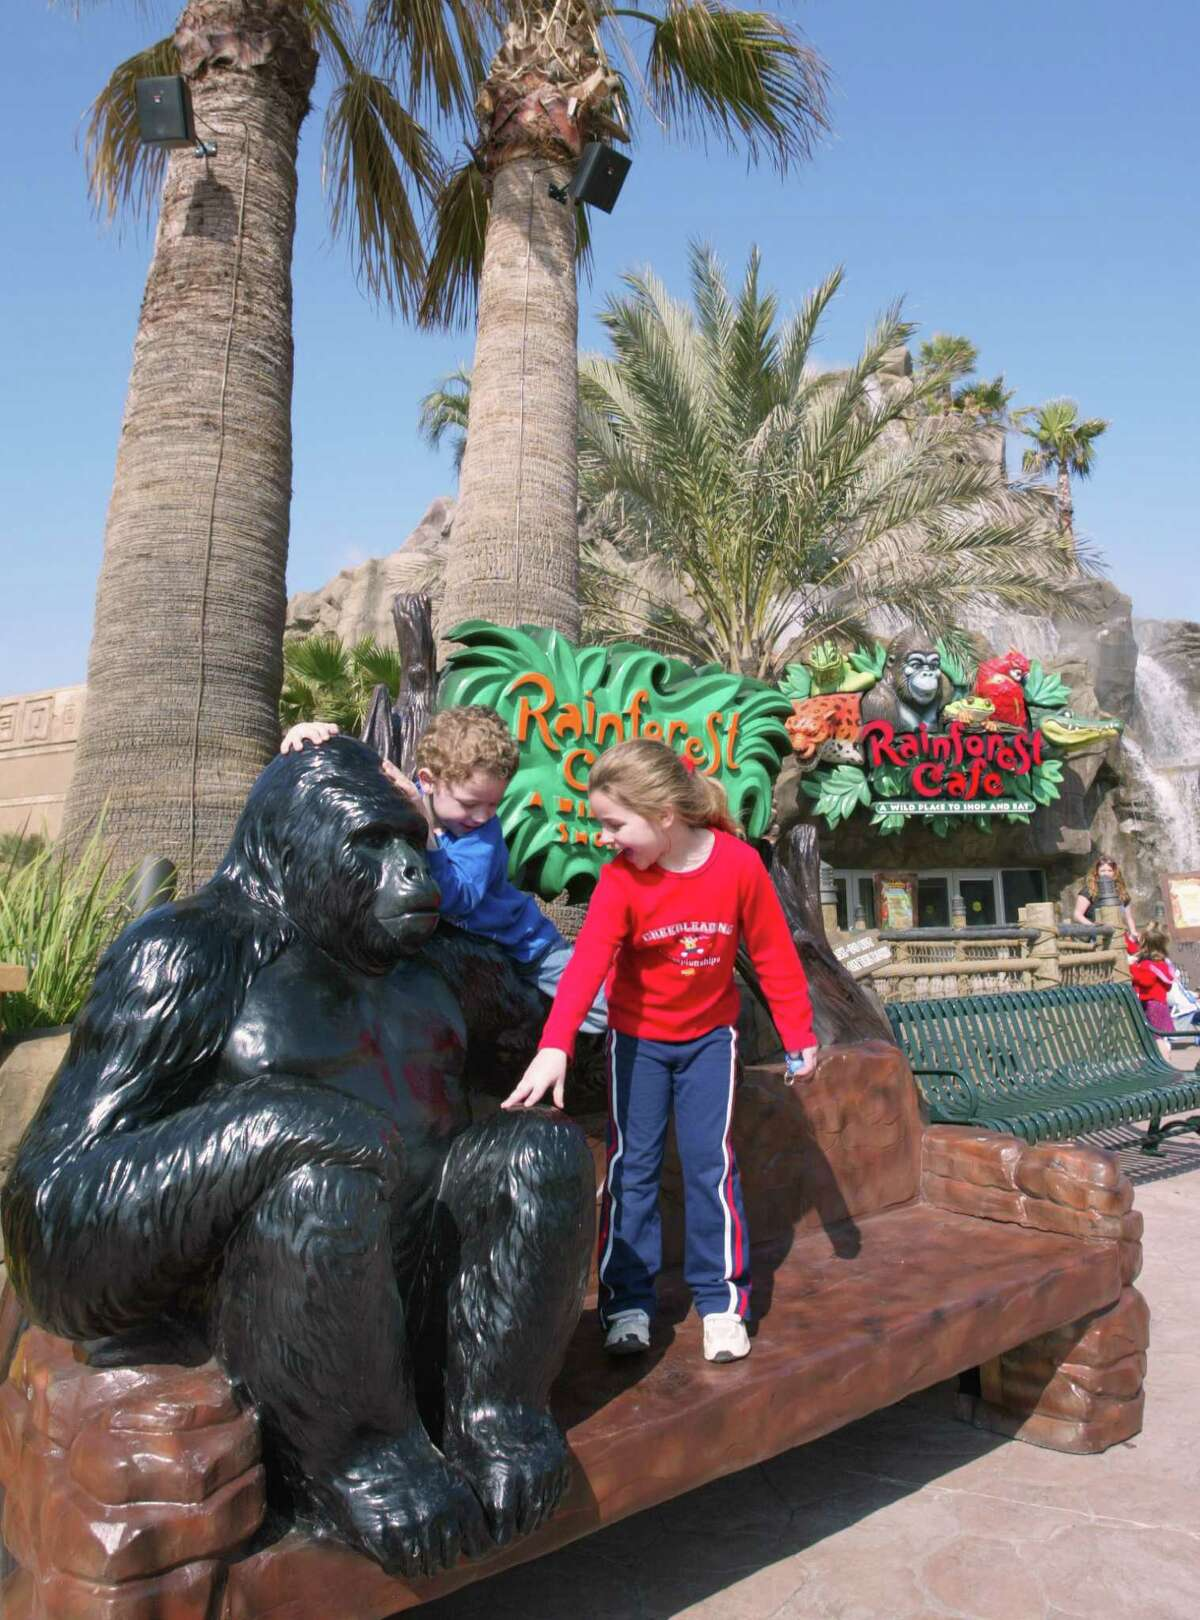 Four-year-old Chandler Ford and 5-year-old Marissa Ford play outside the Rainforest Cafe in Galveston. (Craig H. Hartley/Special to the Chronicle)